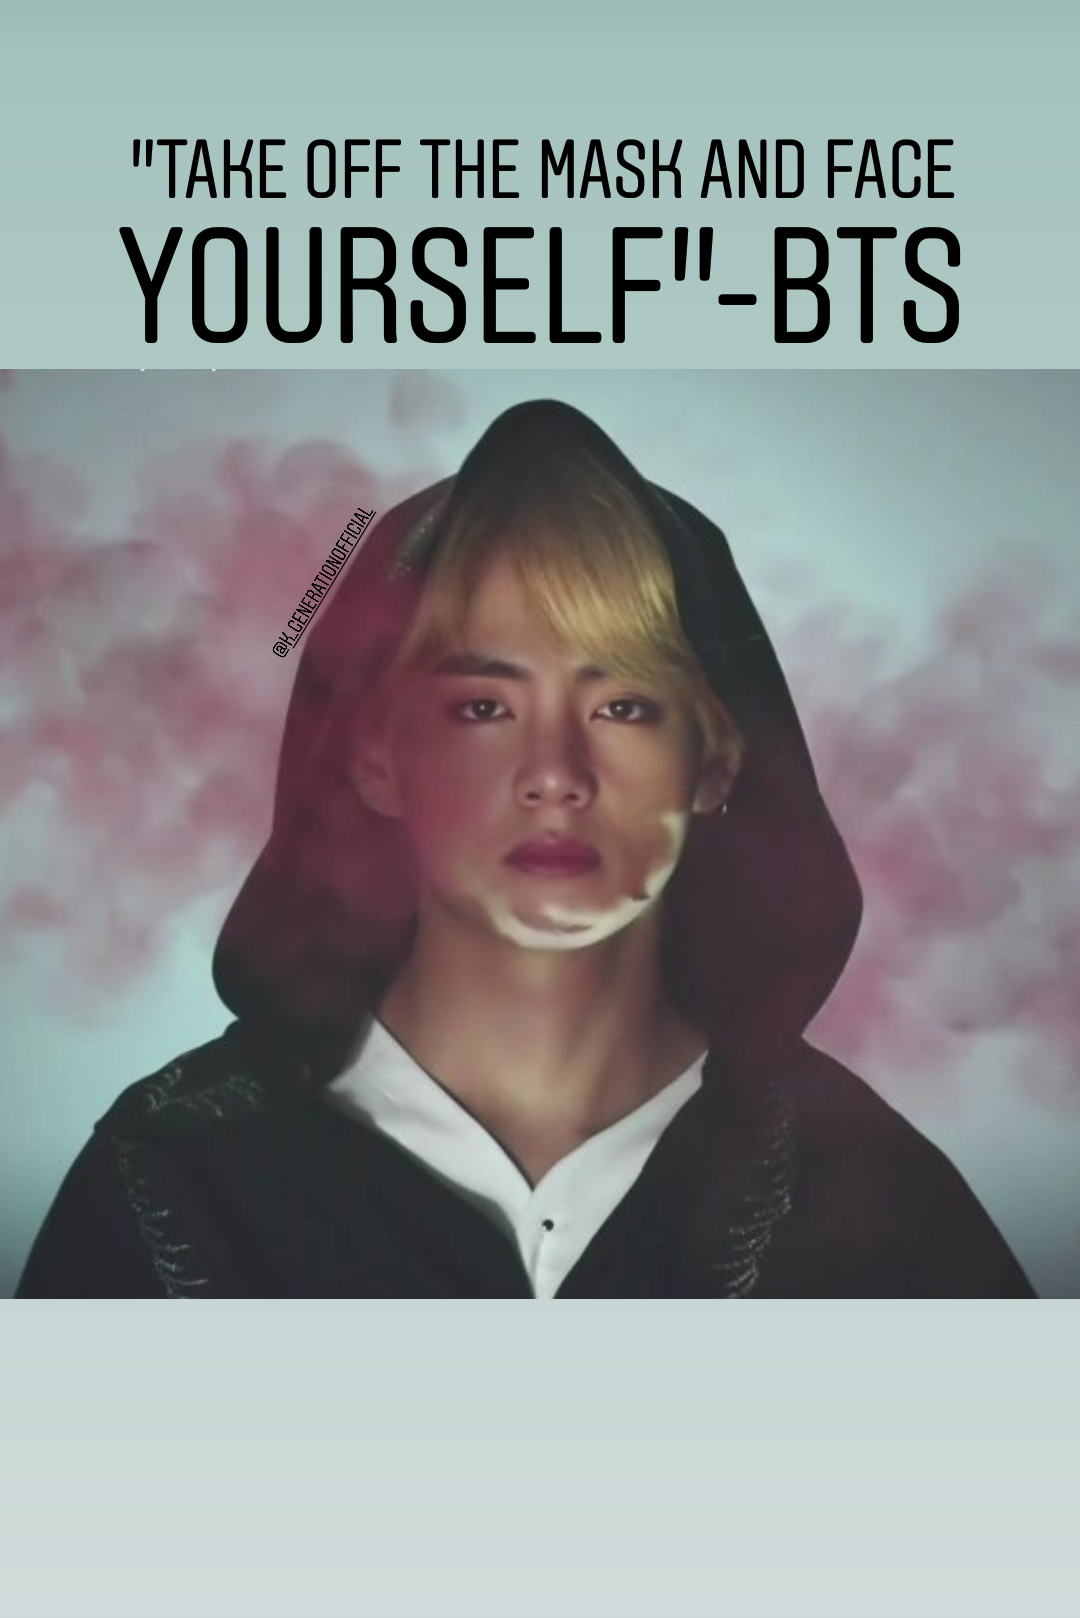 bts quotes inspirational , bts quotes #littleboyquotes